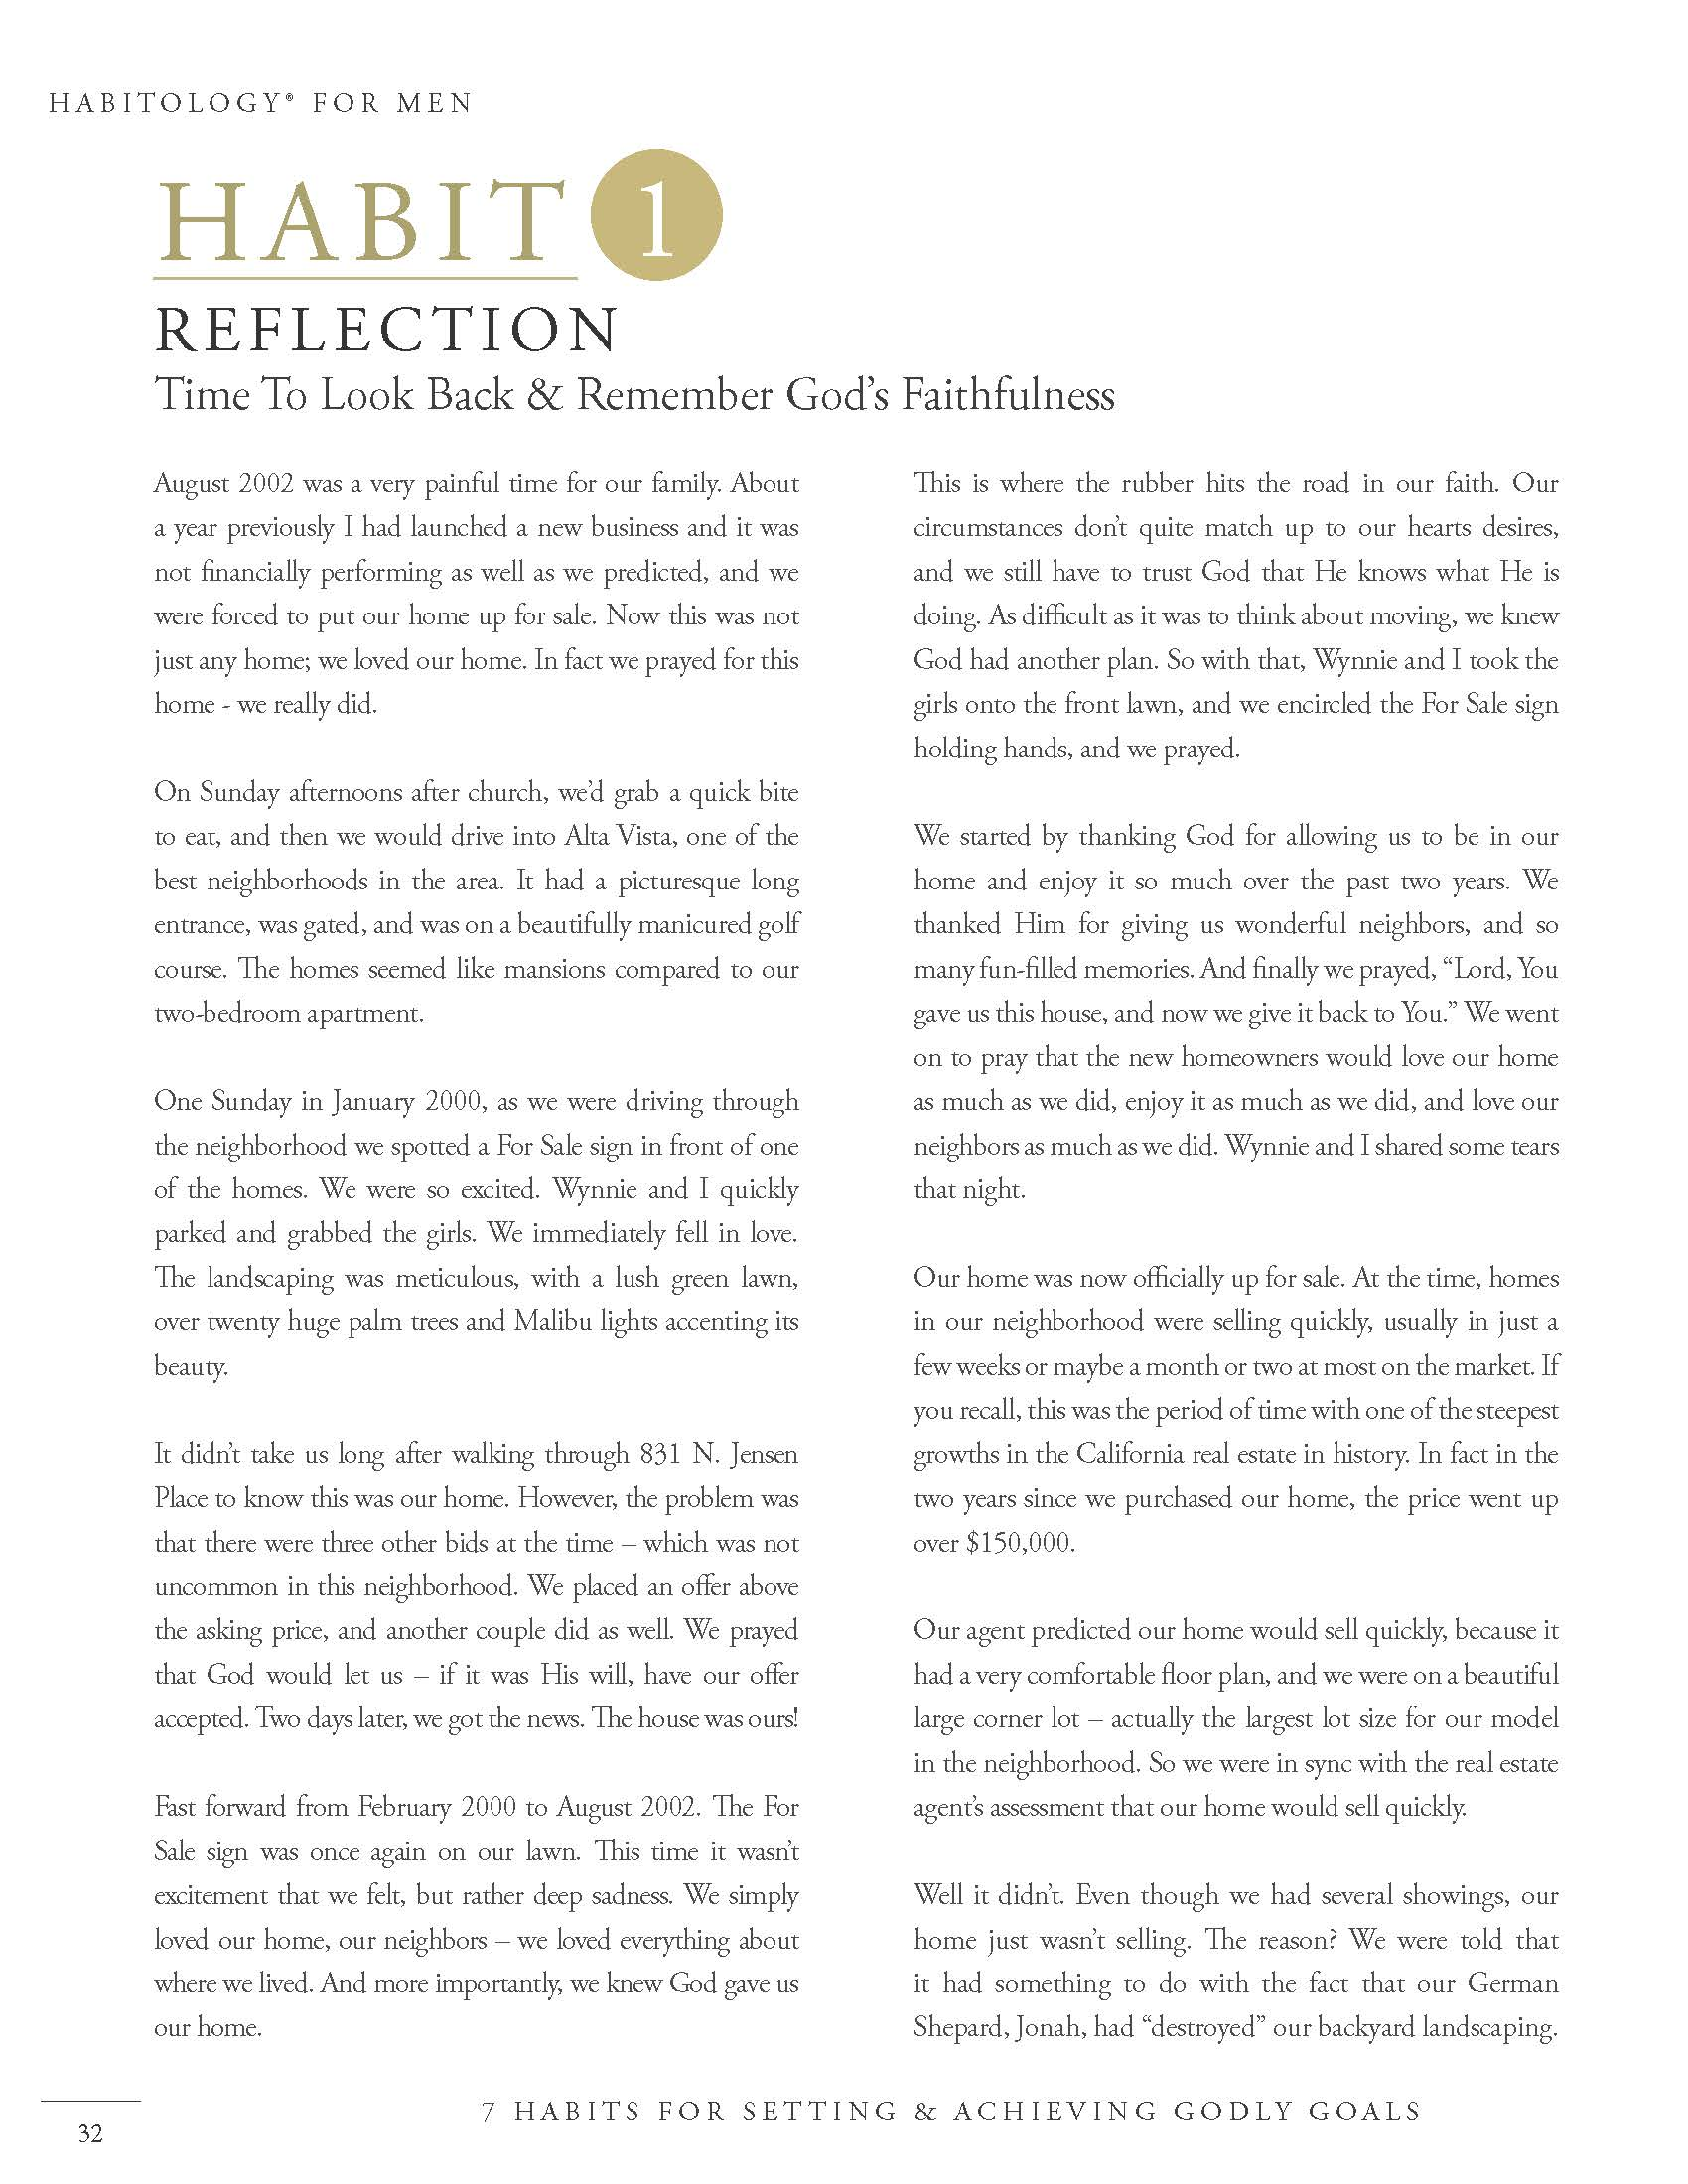 Habitology 7 Habits for Setting and Achieving Godly Goals, V7, 06-27-17 Page 32